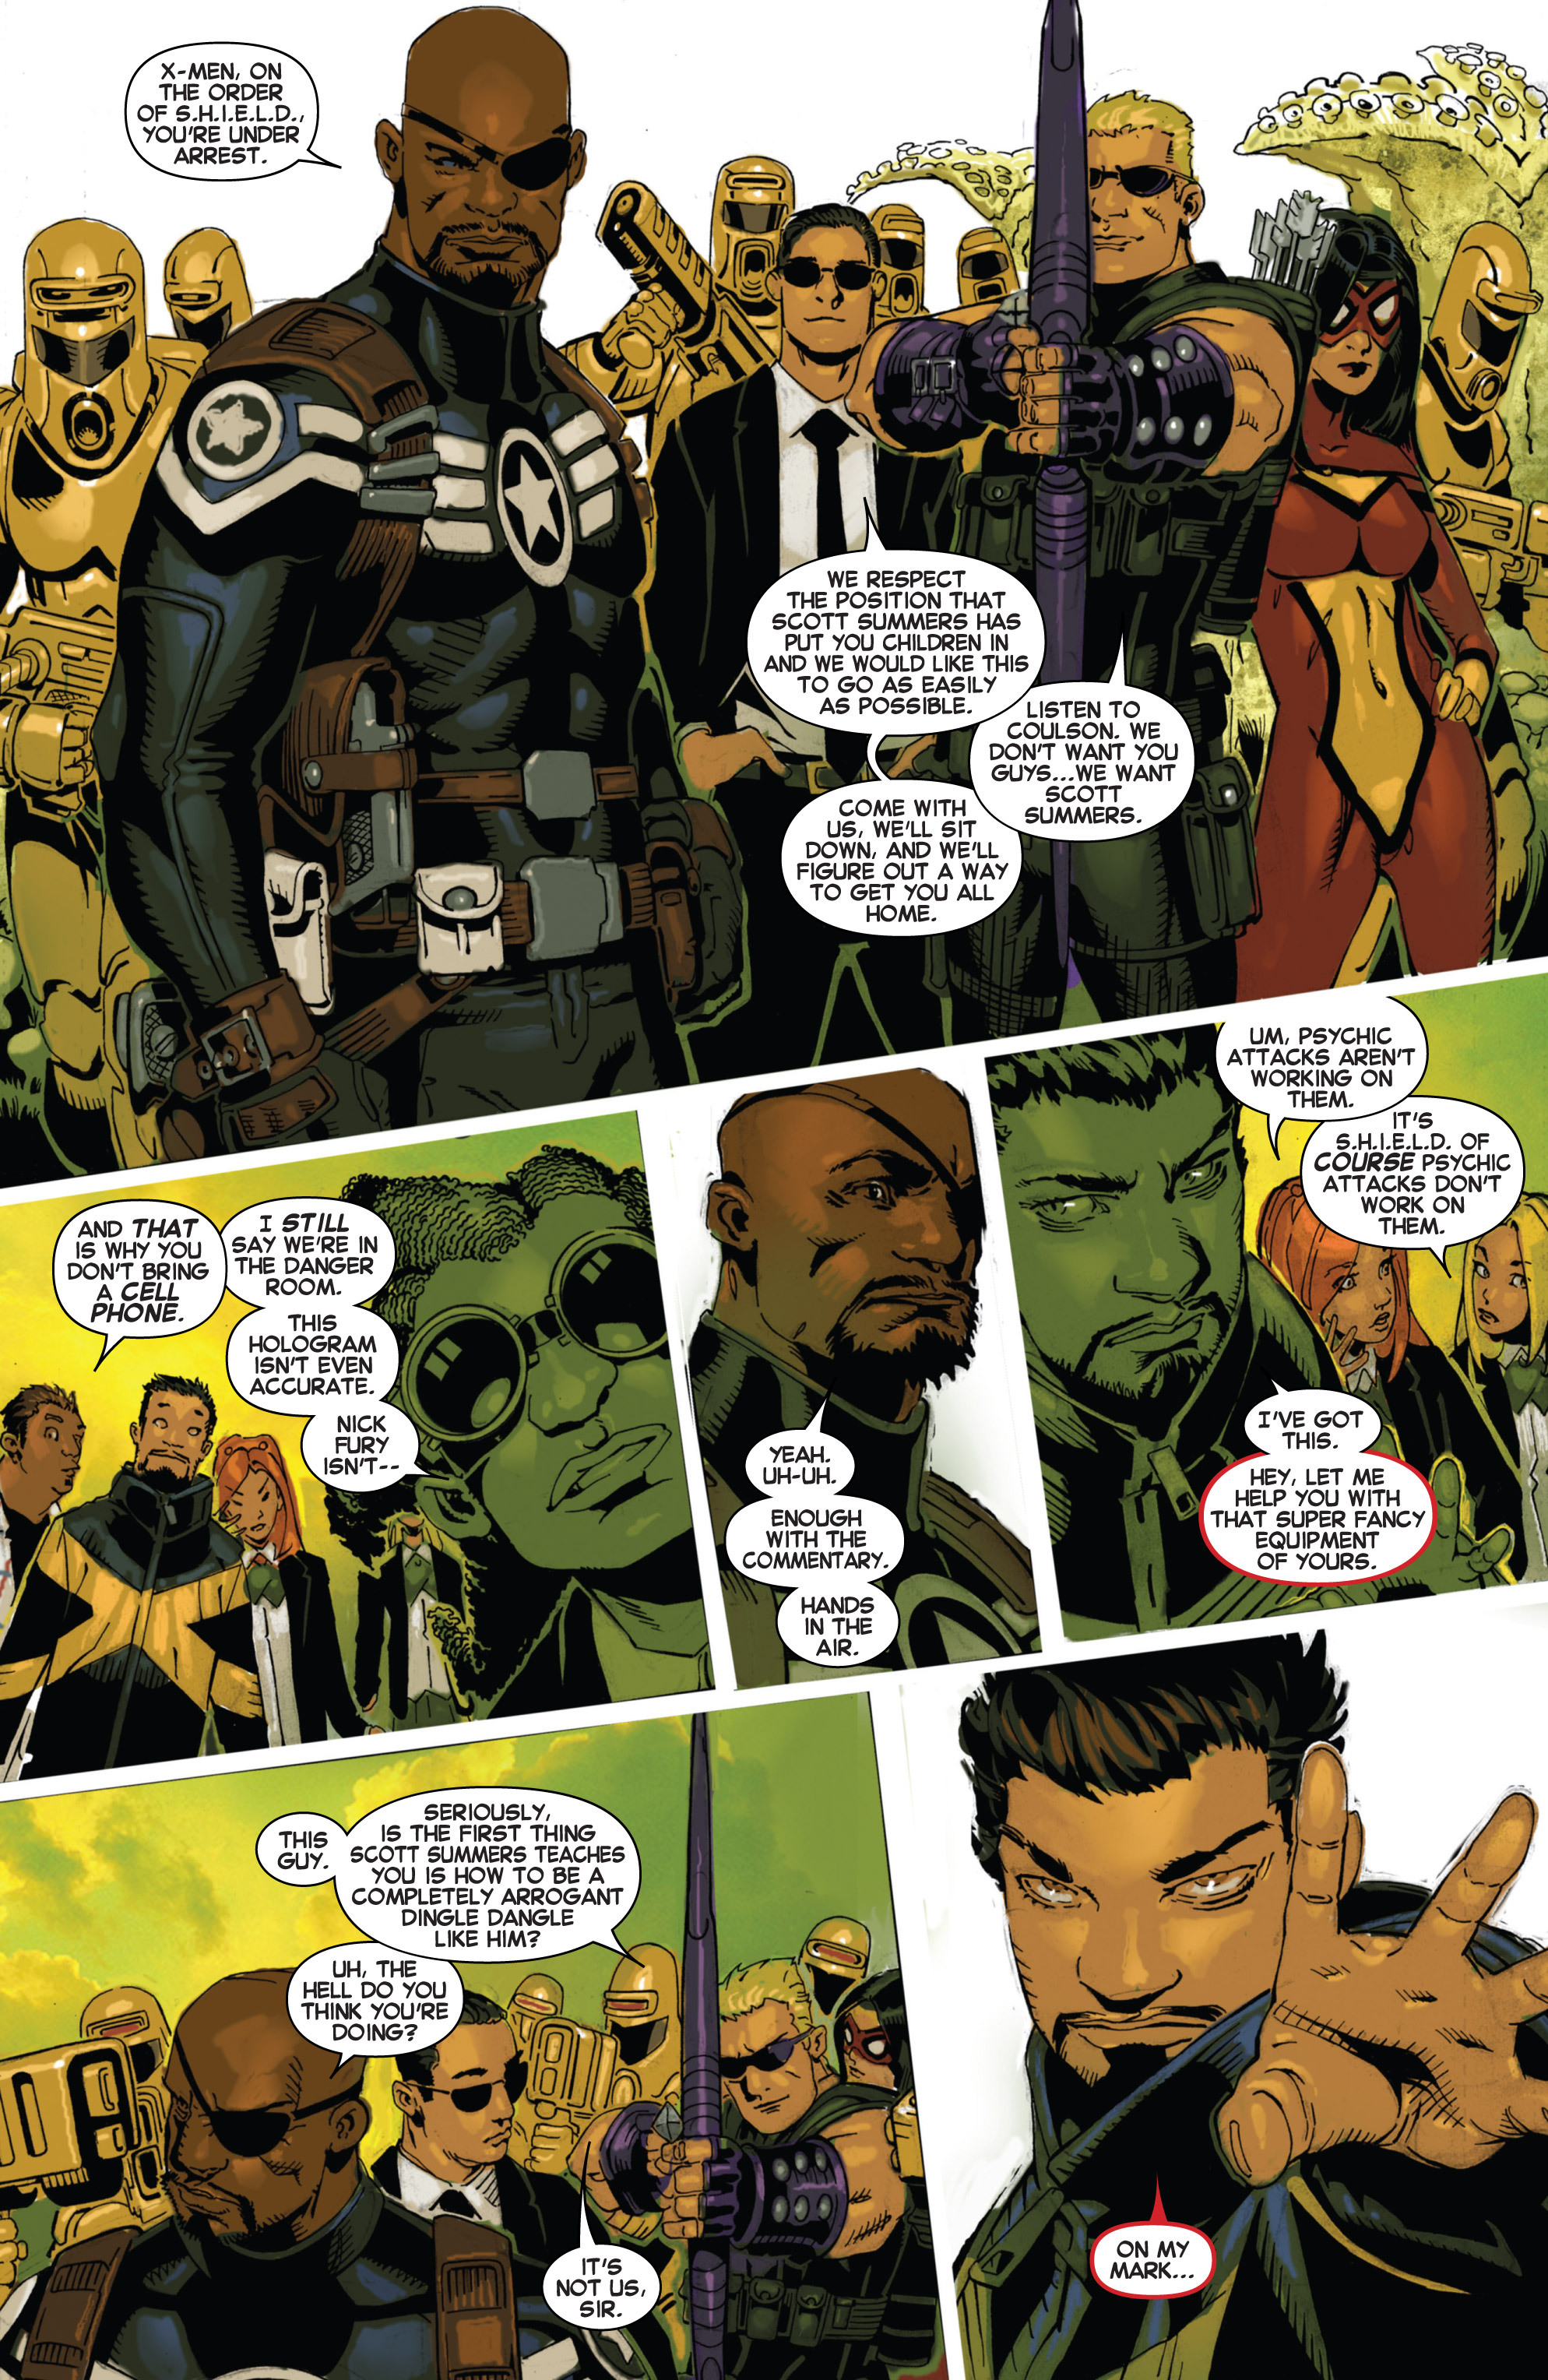 Read online Uncanny X-Men (2013) comic -  Issue # _TPB 3 - The Good, The Bad, The Inhuman - 80